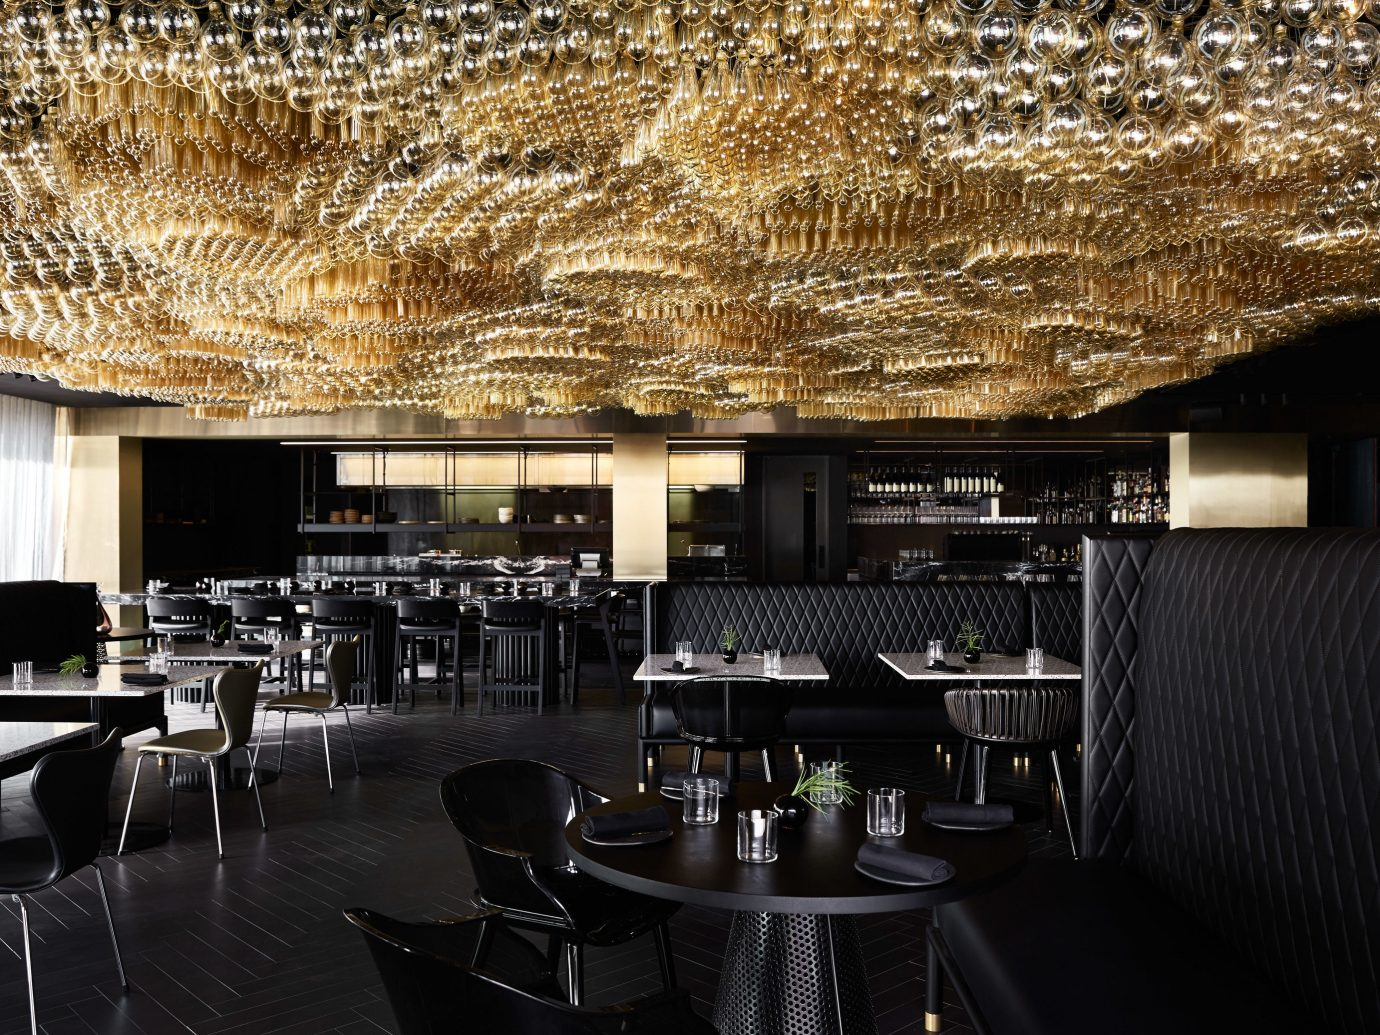 Food + Drink Hotels indoor restaurant interior design ceiling Bar furniture area several dining room